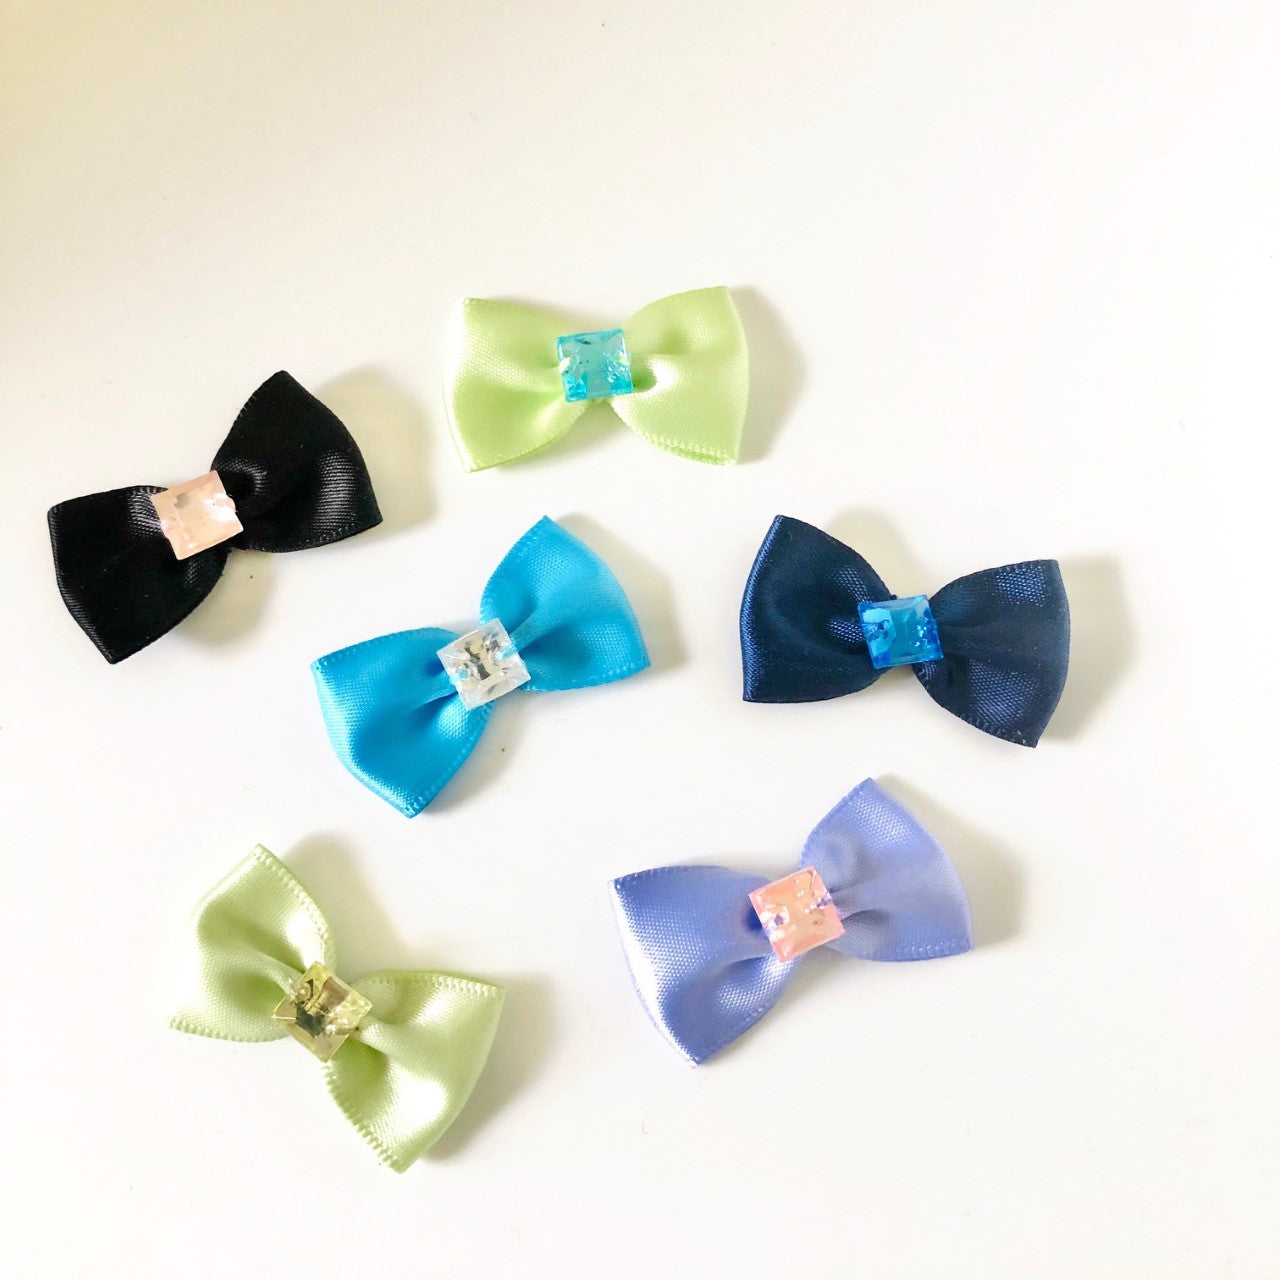 Single square Gemstones of different colors on satin bows in several colors